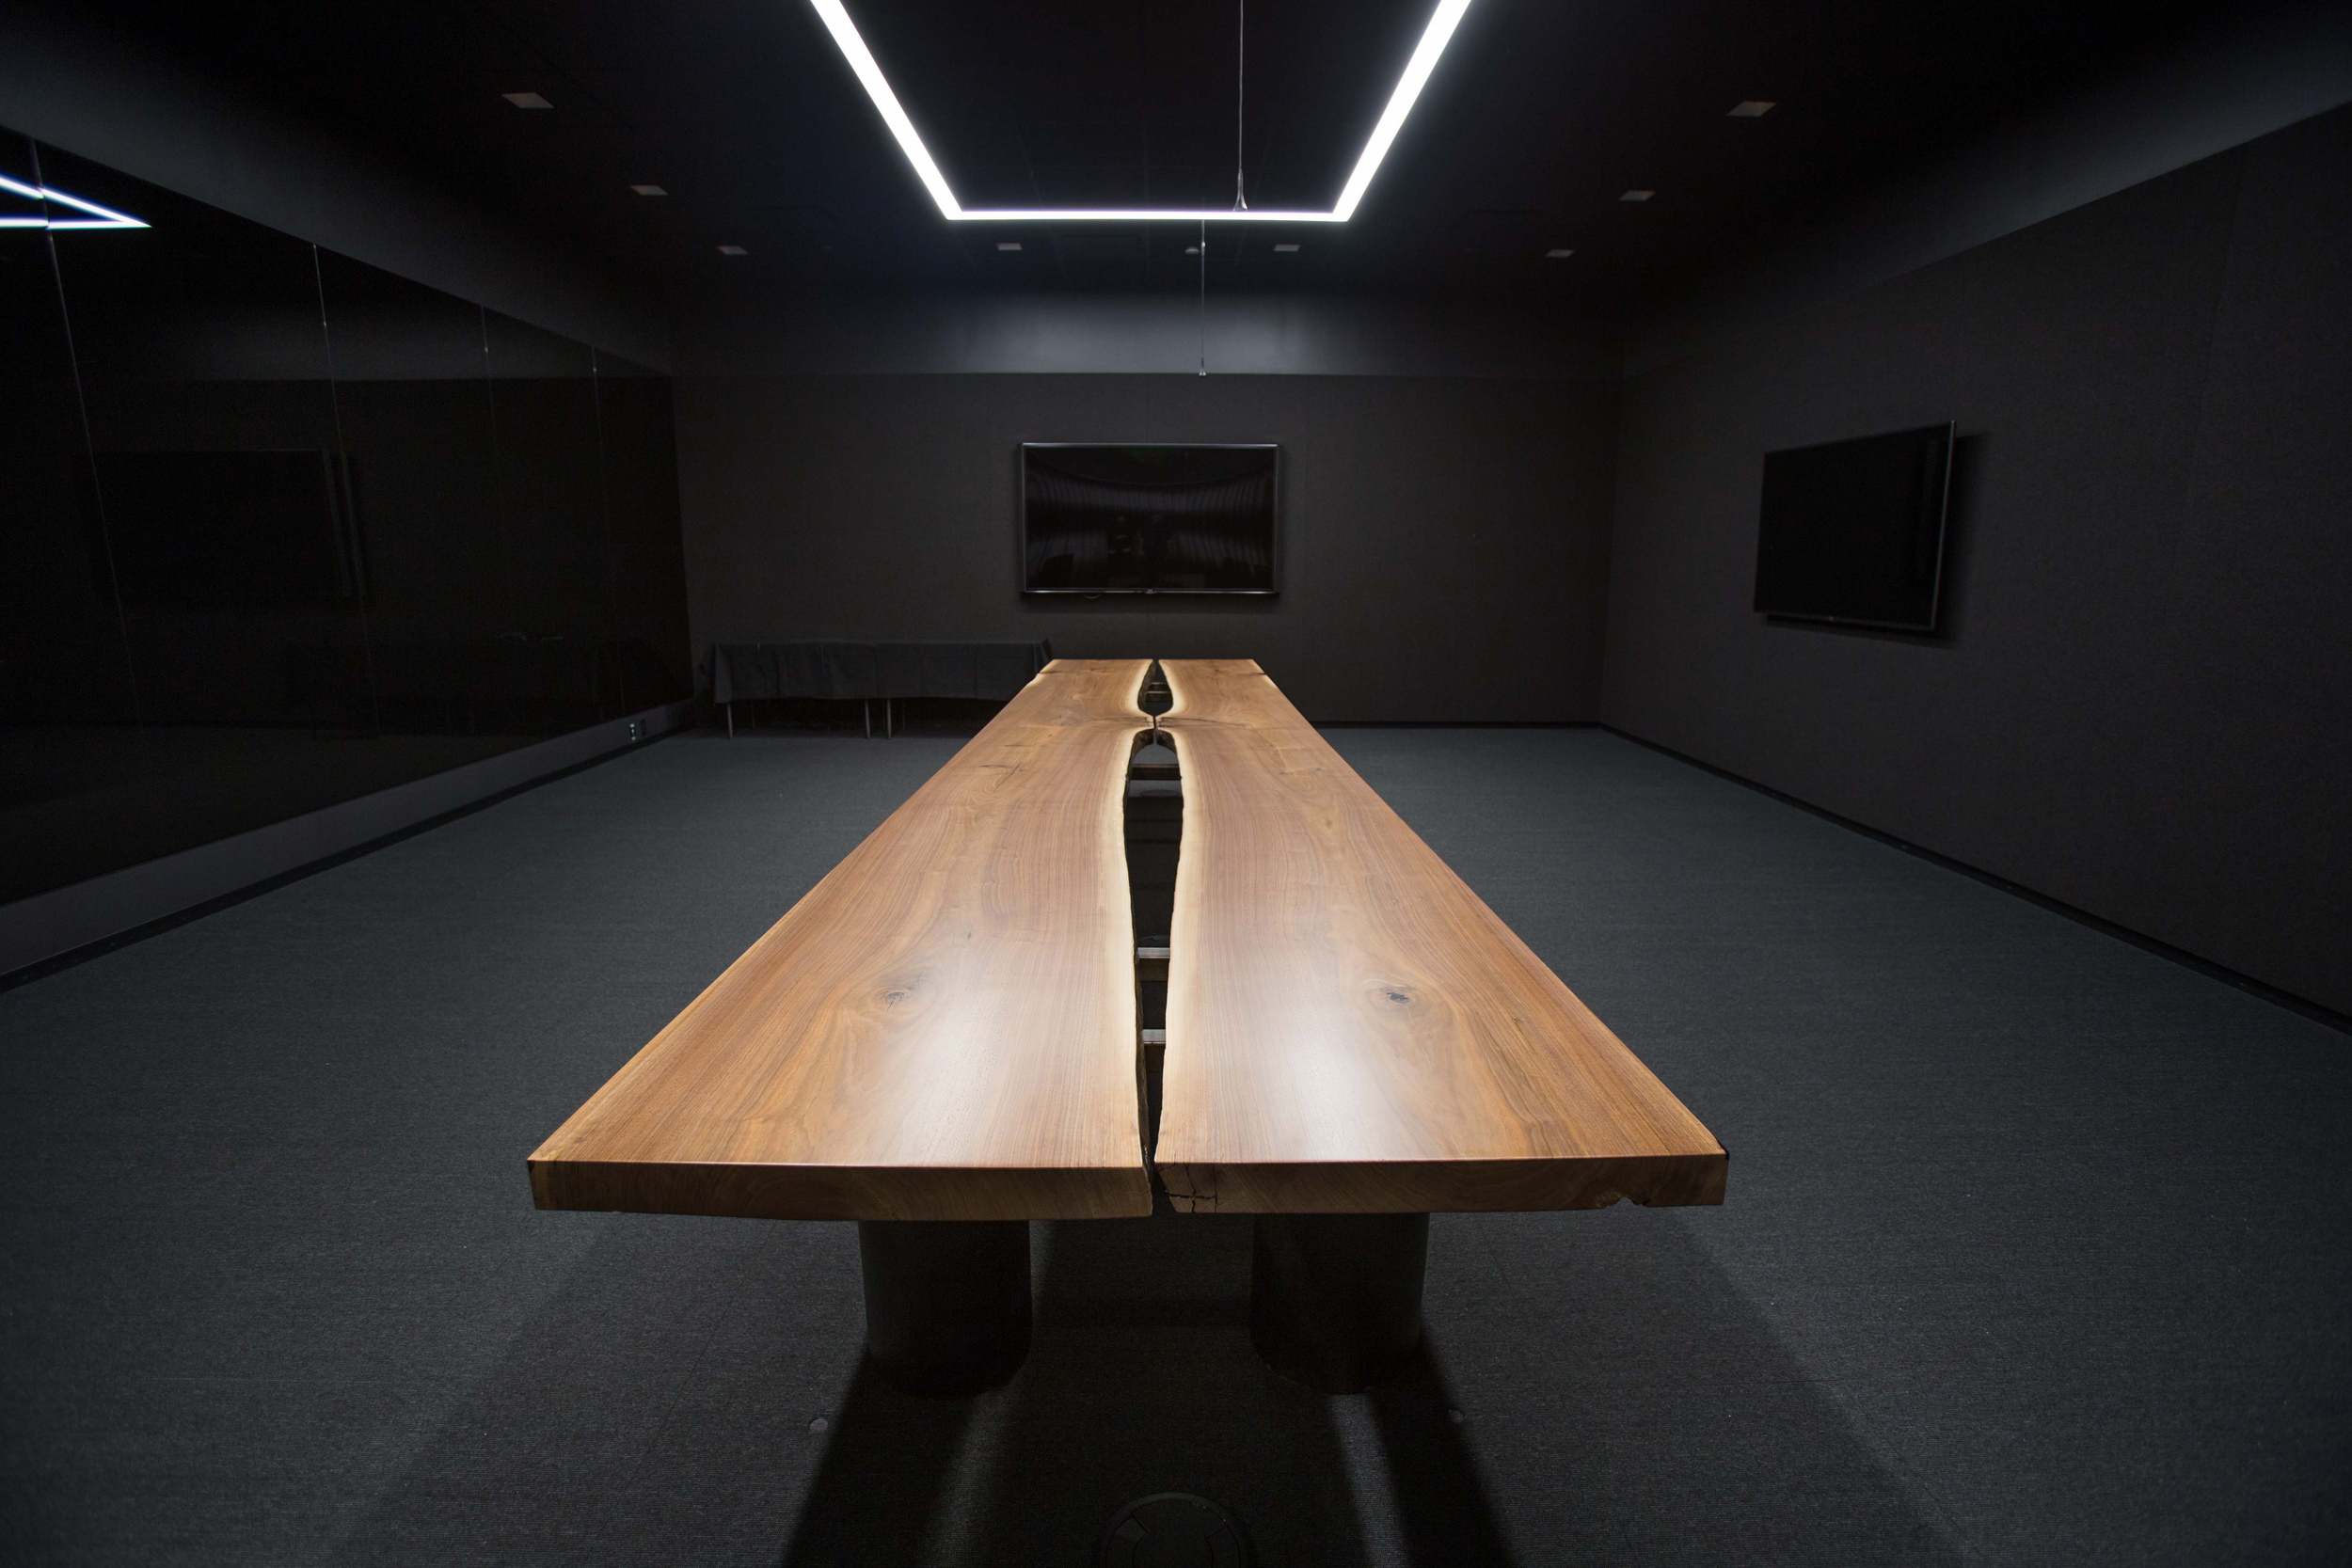 conferencetable2.jpg